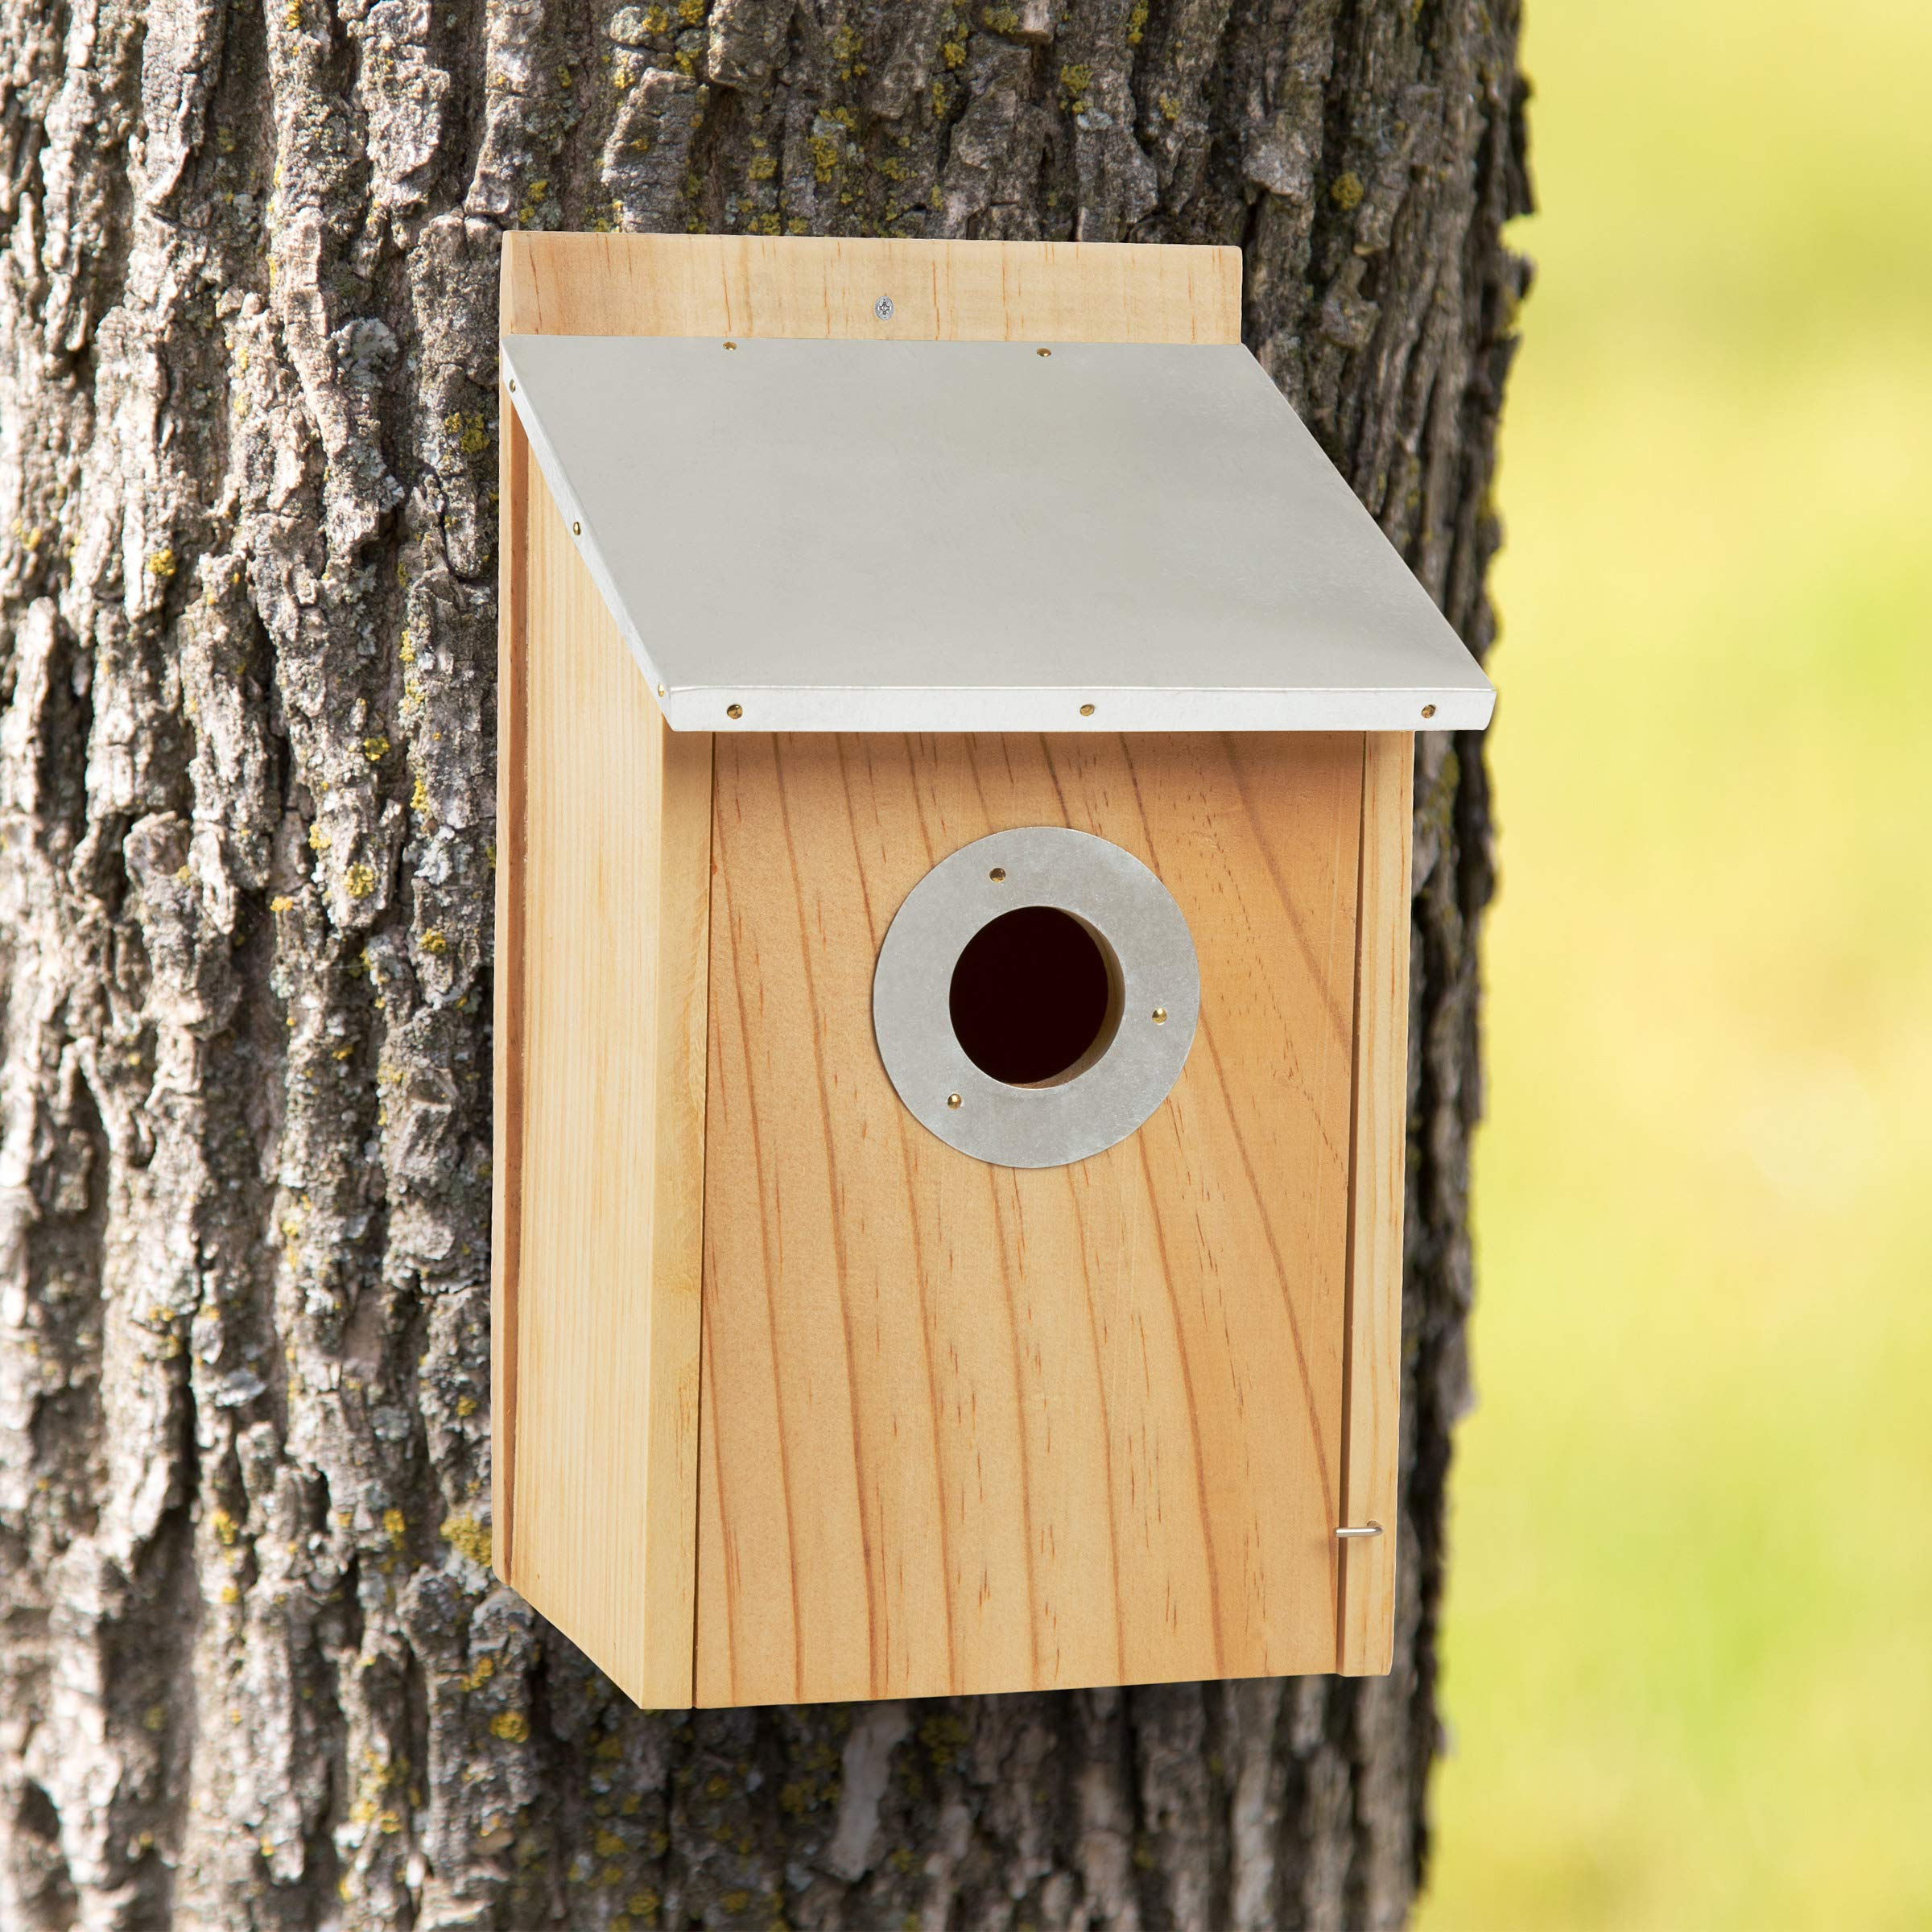 Pure Garden 50-LG1105 Pine Bird House with Tin Roof-Outdoor, Weather Resistant Classic Wooden Nesting Box Birdhouse Attracts Bluebirds, Finch, Wren, More